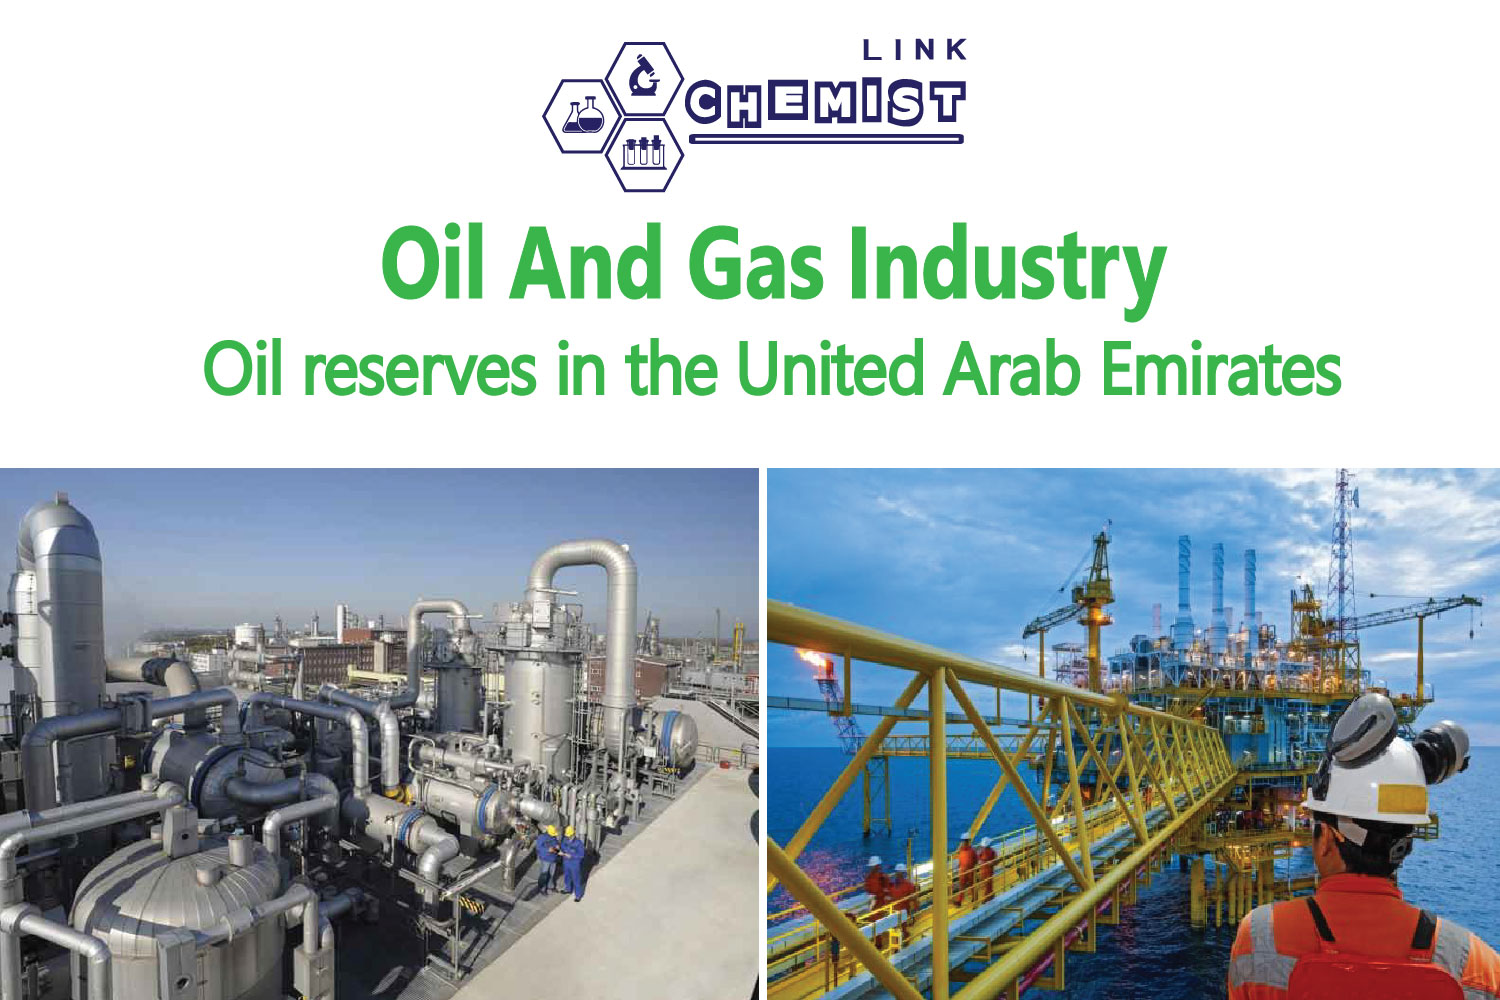 Oil And Gas Industry - Oil reserves in the United Arab